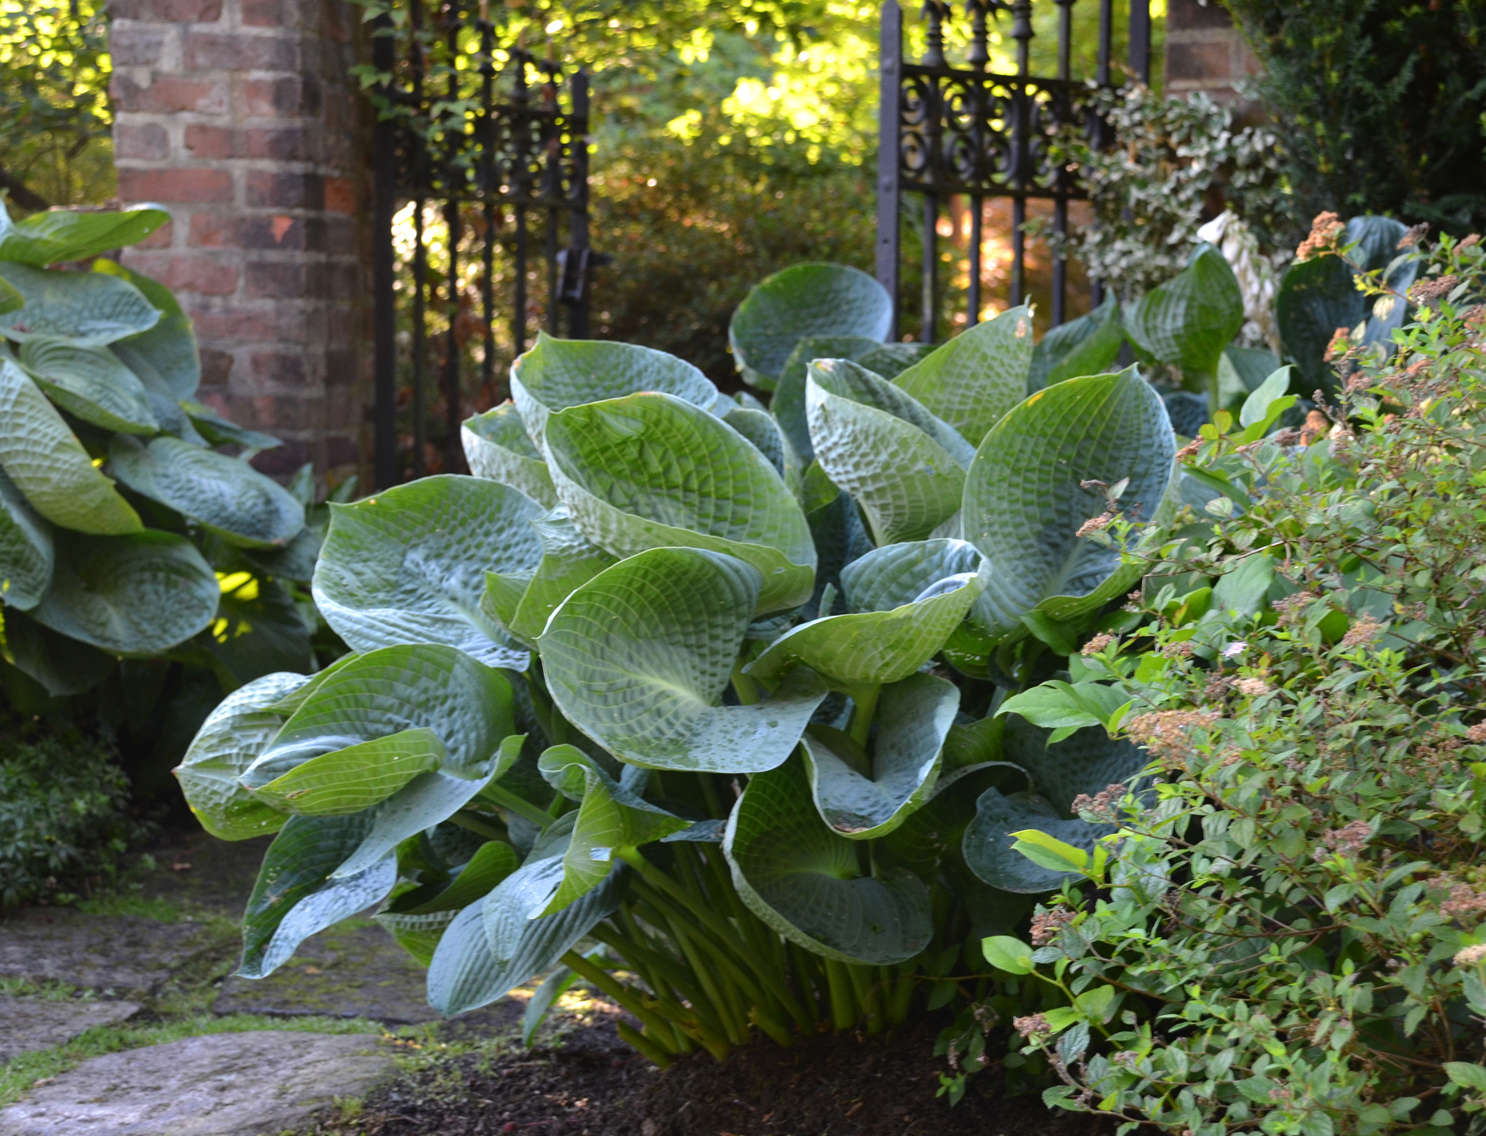 Comfy Year Drinking 2014 Hosta Or Blue Hostasretain Ir Coloration Better When Grown Under Shaderequirements All Hostas Are Not Created Equally Walters houzz-03 Hostas For Sun